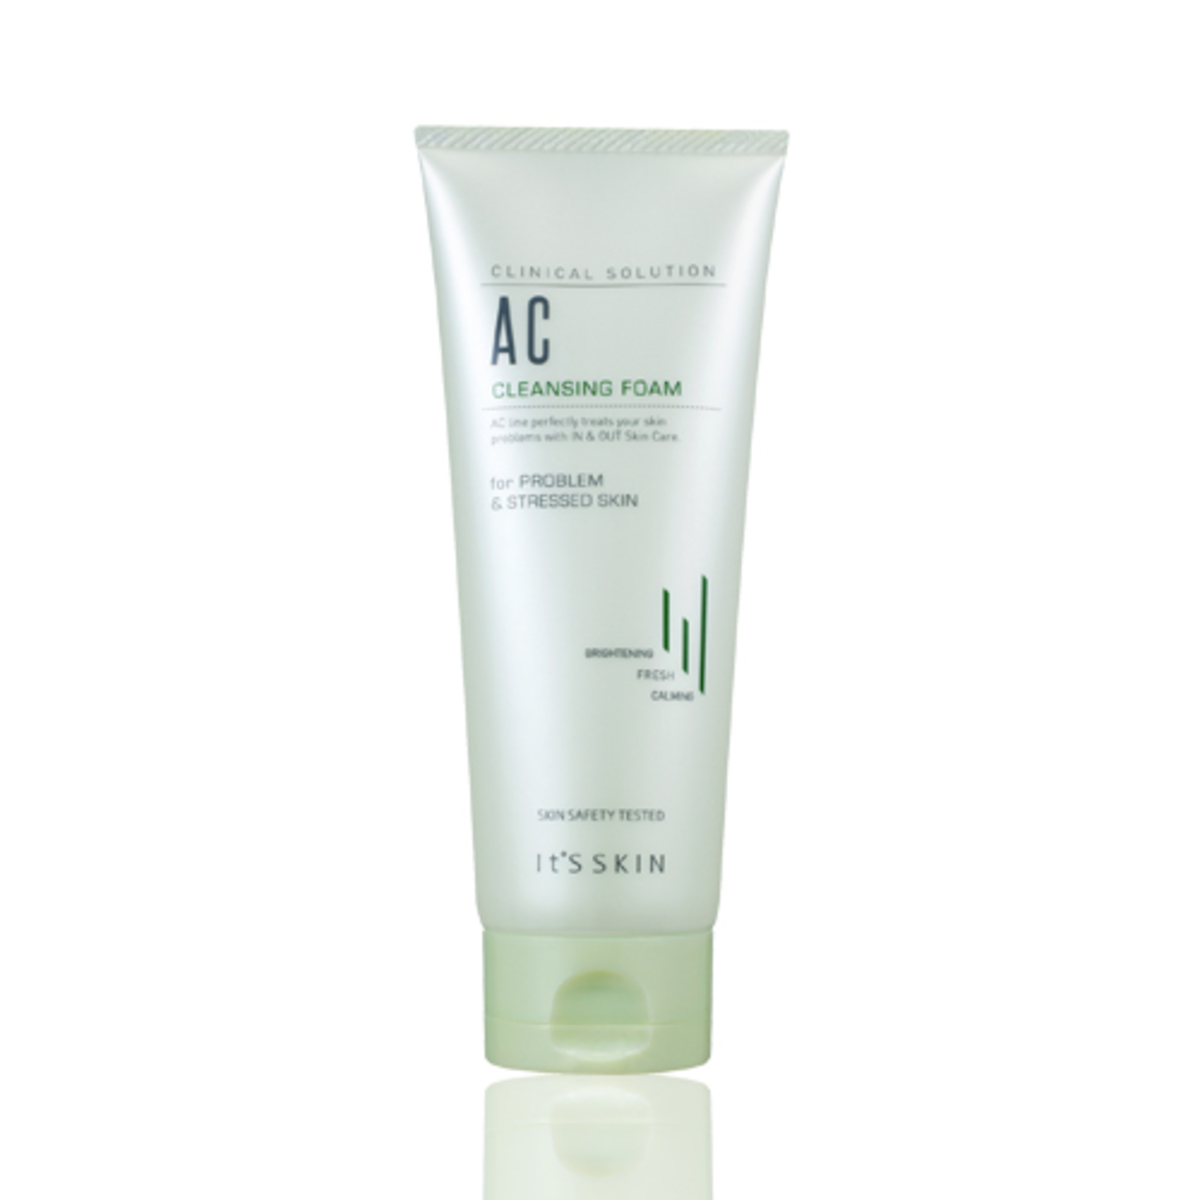 Clinical Solution AC Cleansing Form 150 ml